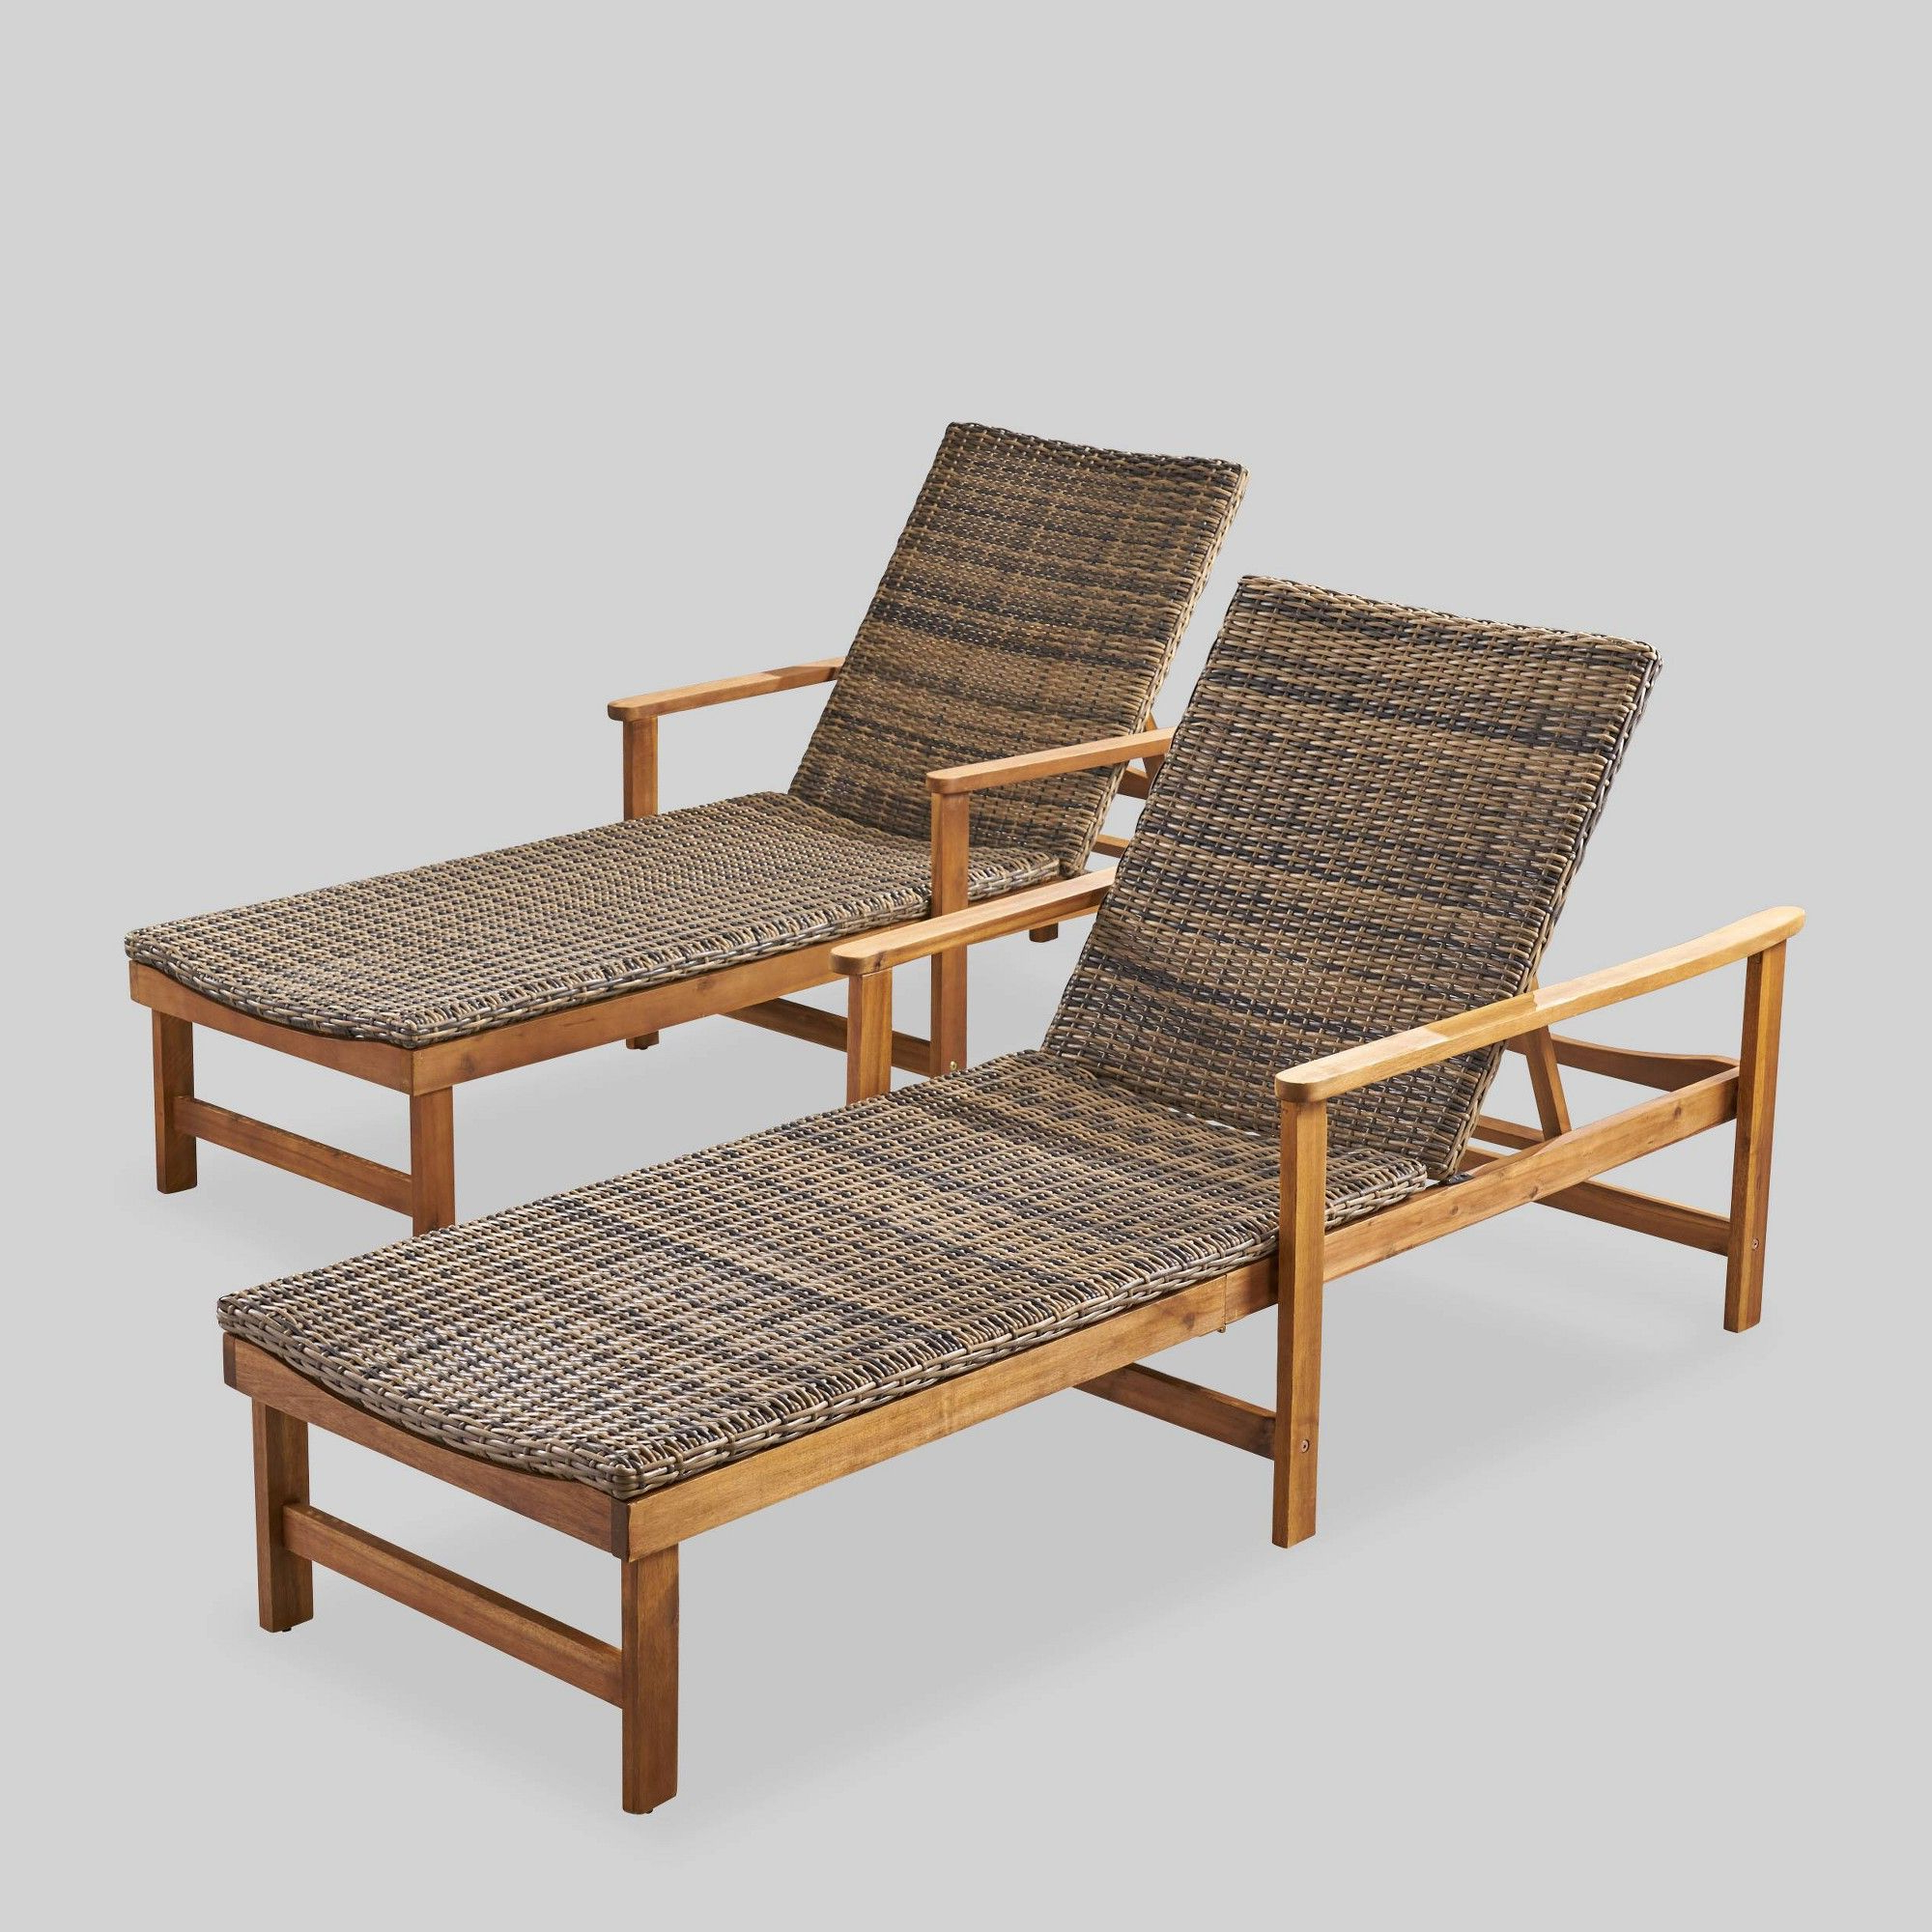 2019 Hampton Outdoor Chaise Lounges Acacia Wood And Wicker Within Hampton 2Pk Acacia Wood And Wicker Chaise Lounges Natural (Gallery 6 of 25)